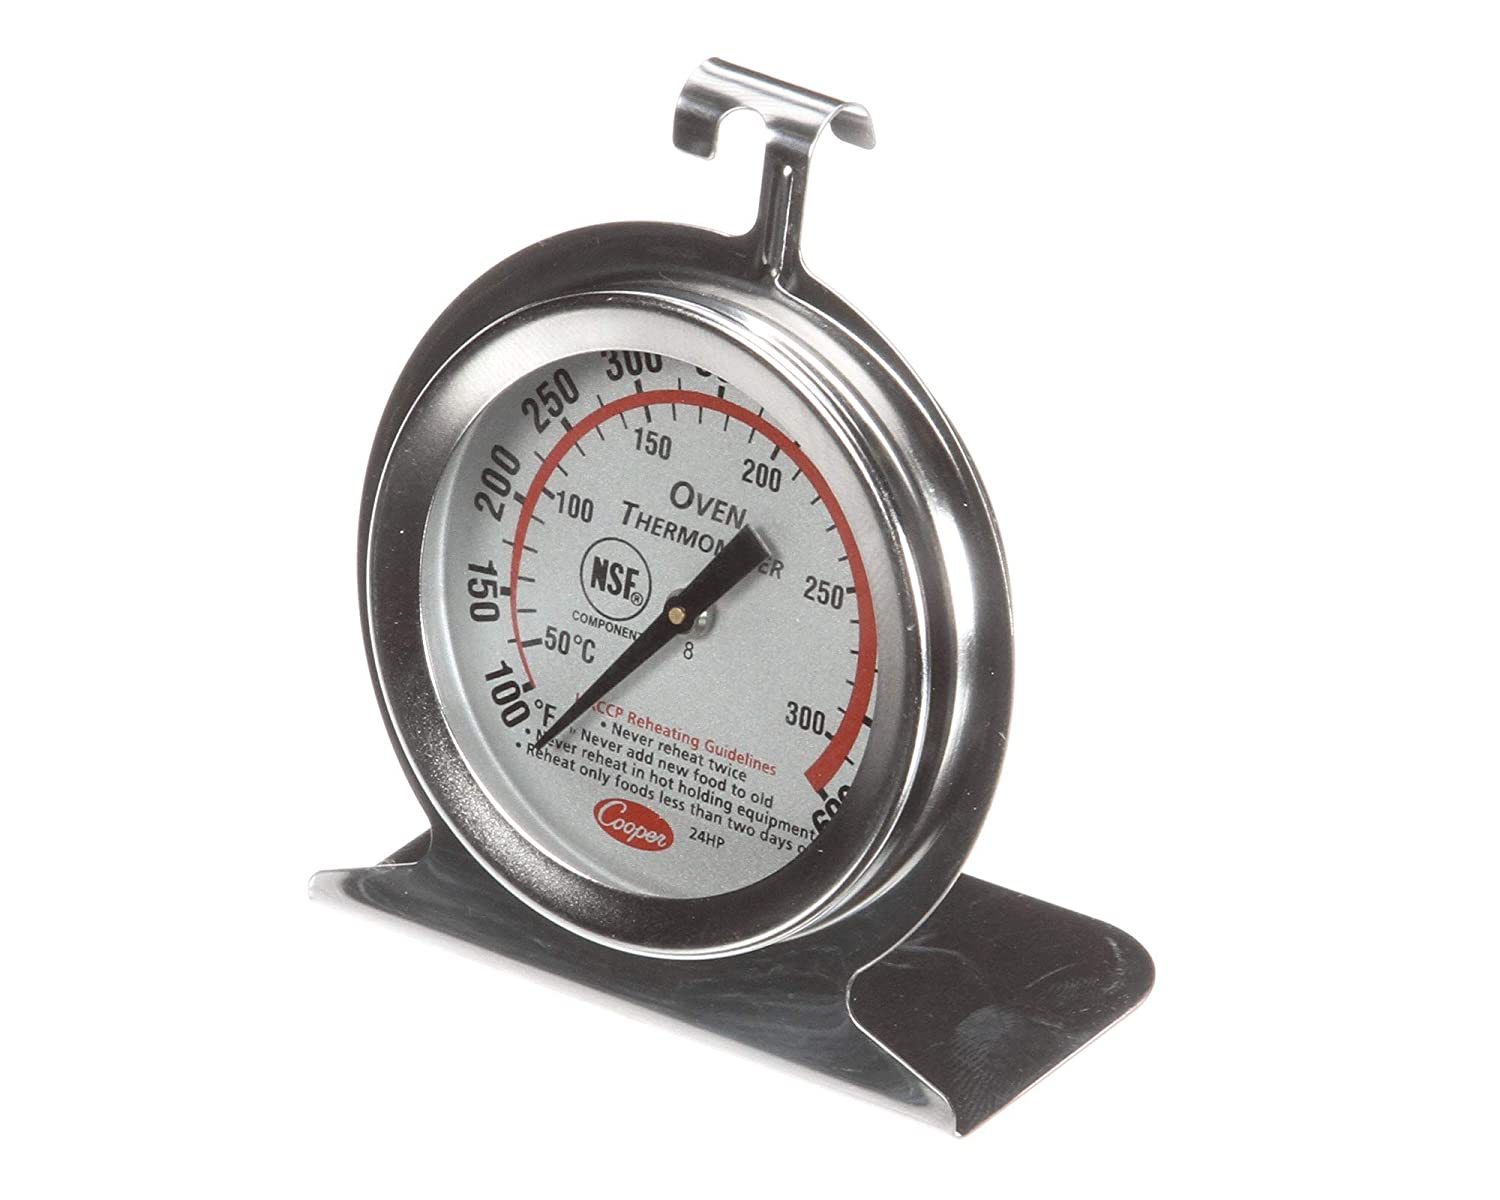 Cooper Atkins 24HP-01-1 Oven Thermometer Nsf Haccp Ss